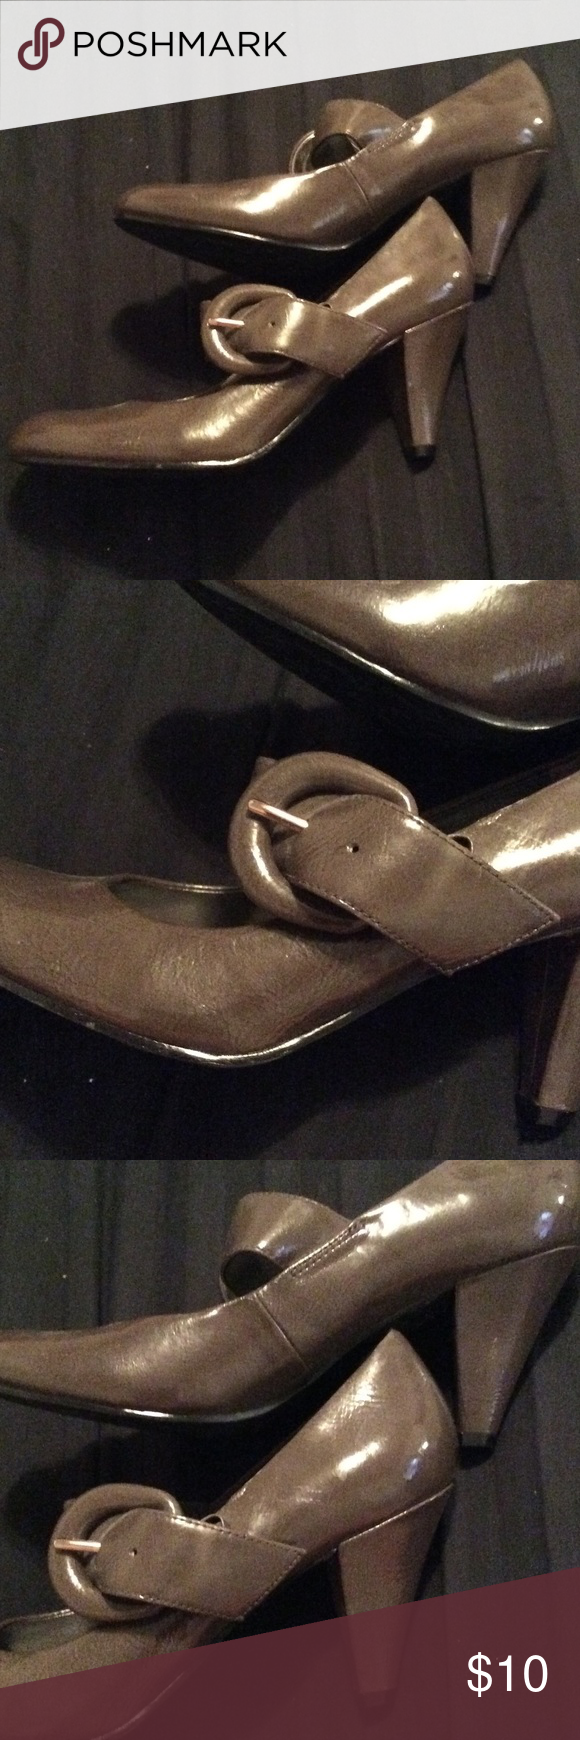 Brown Mary Jane Style Heels Great item. Never worn. Apx 2 inch heel. Any questions please ask. Shoes Heels